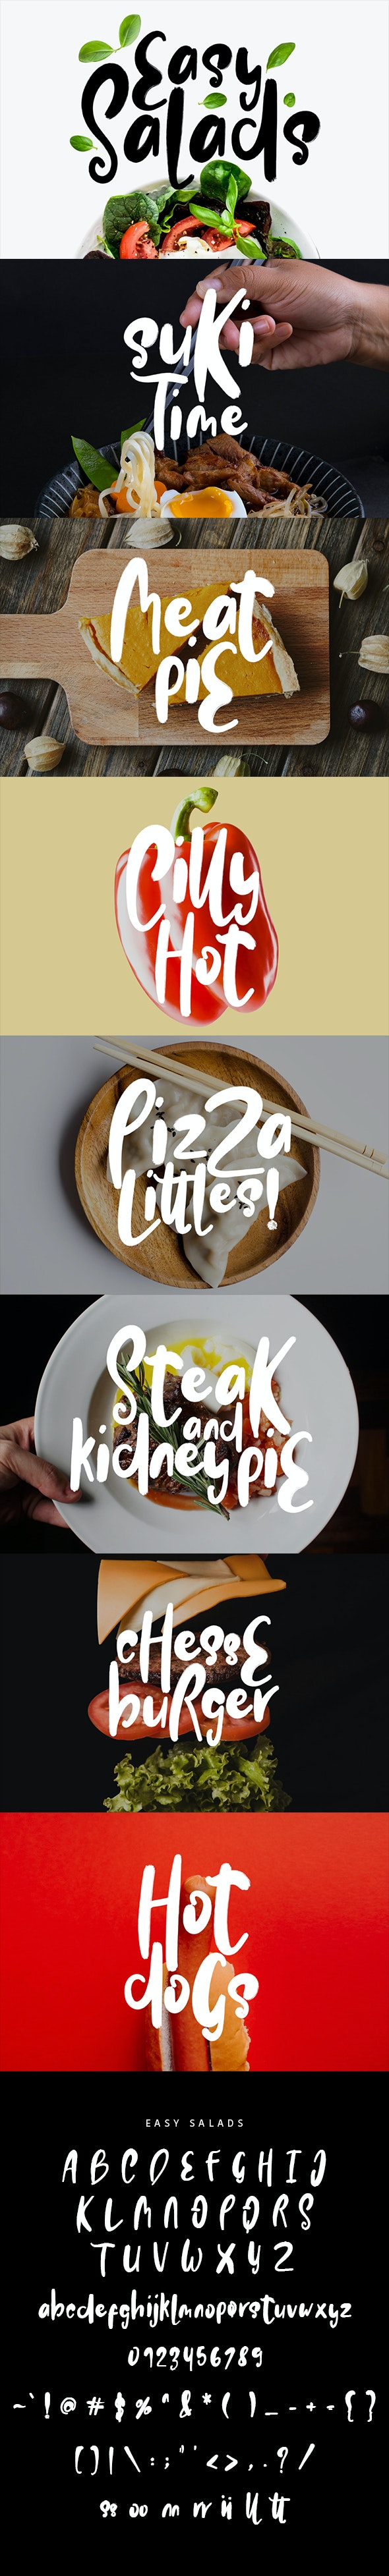 Easy Salads Typeface - Cool Fonts